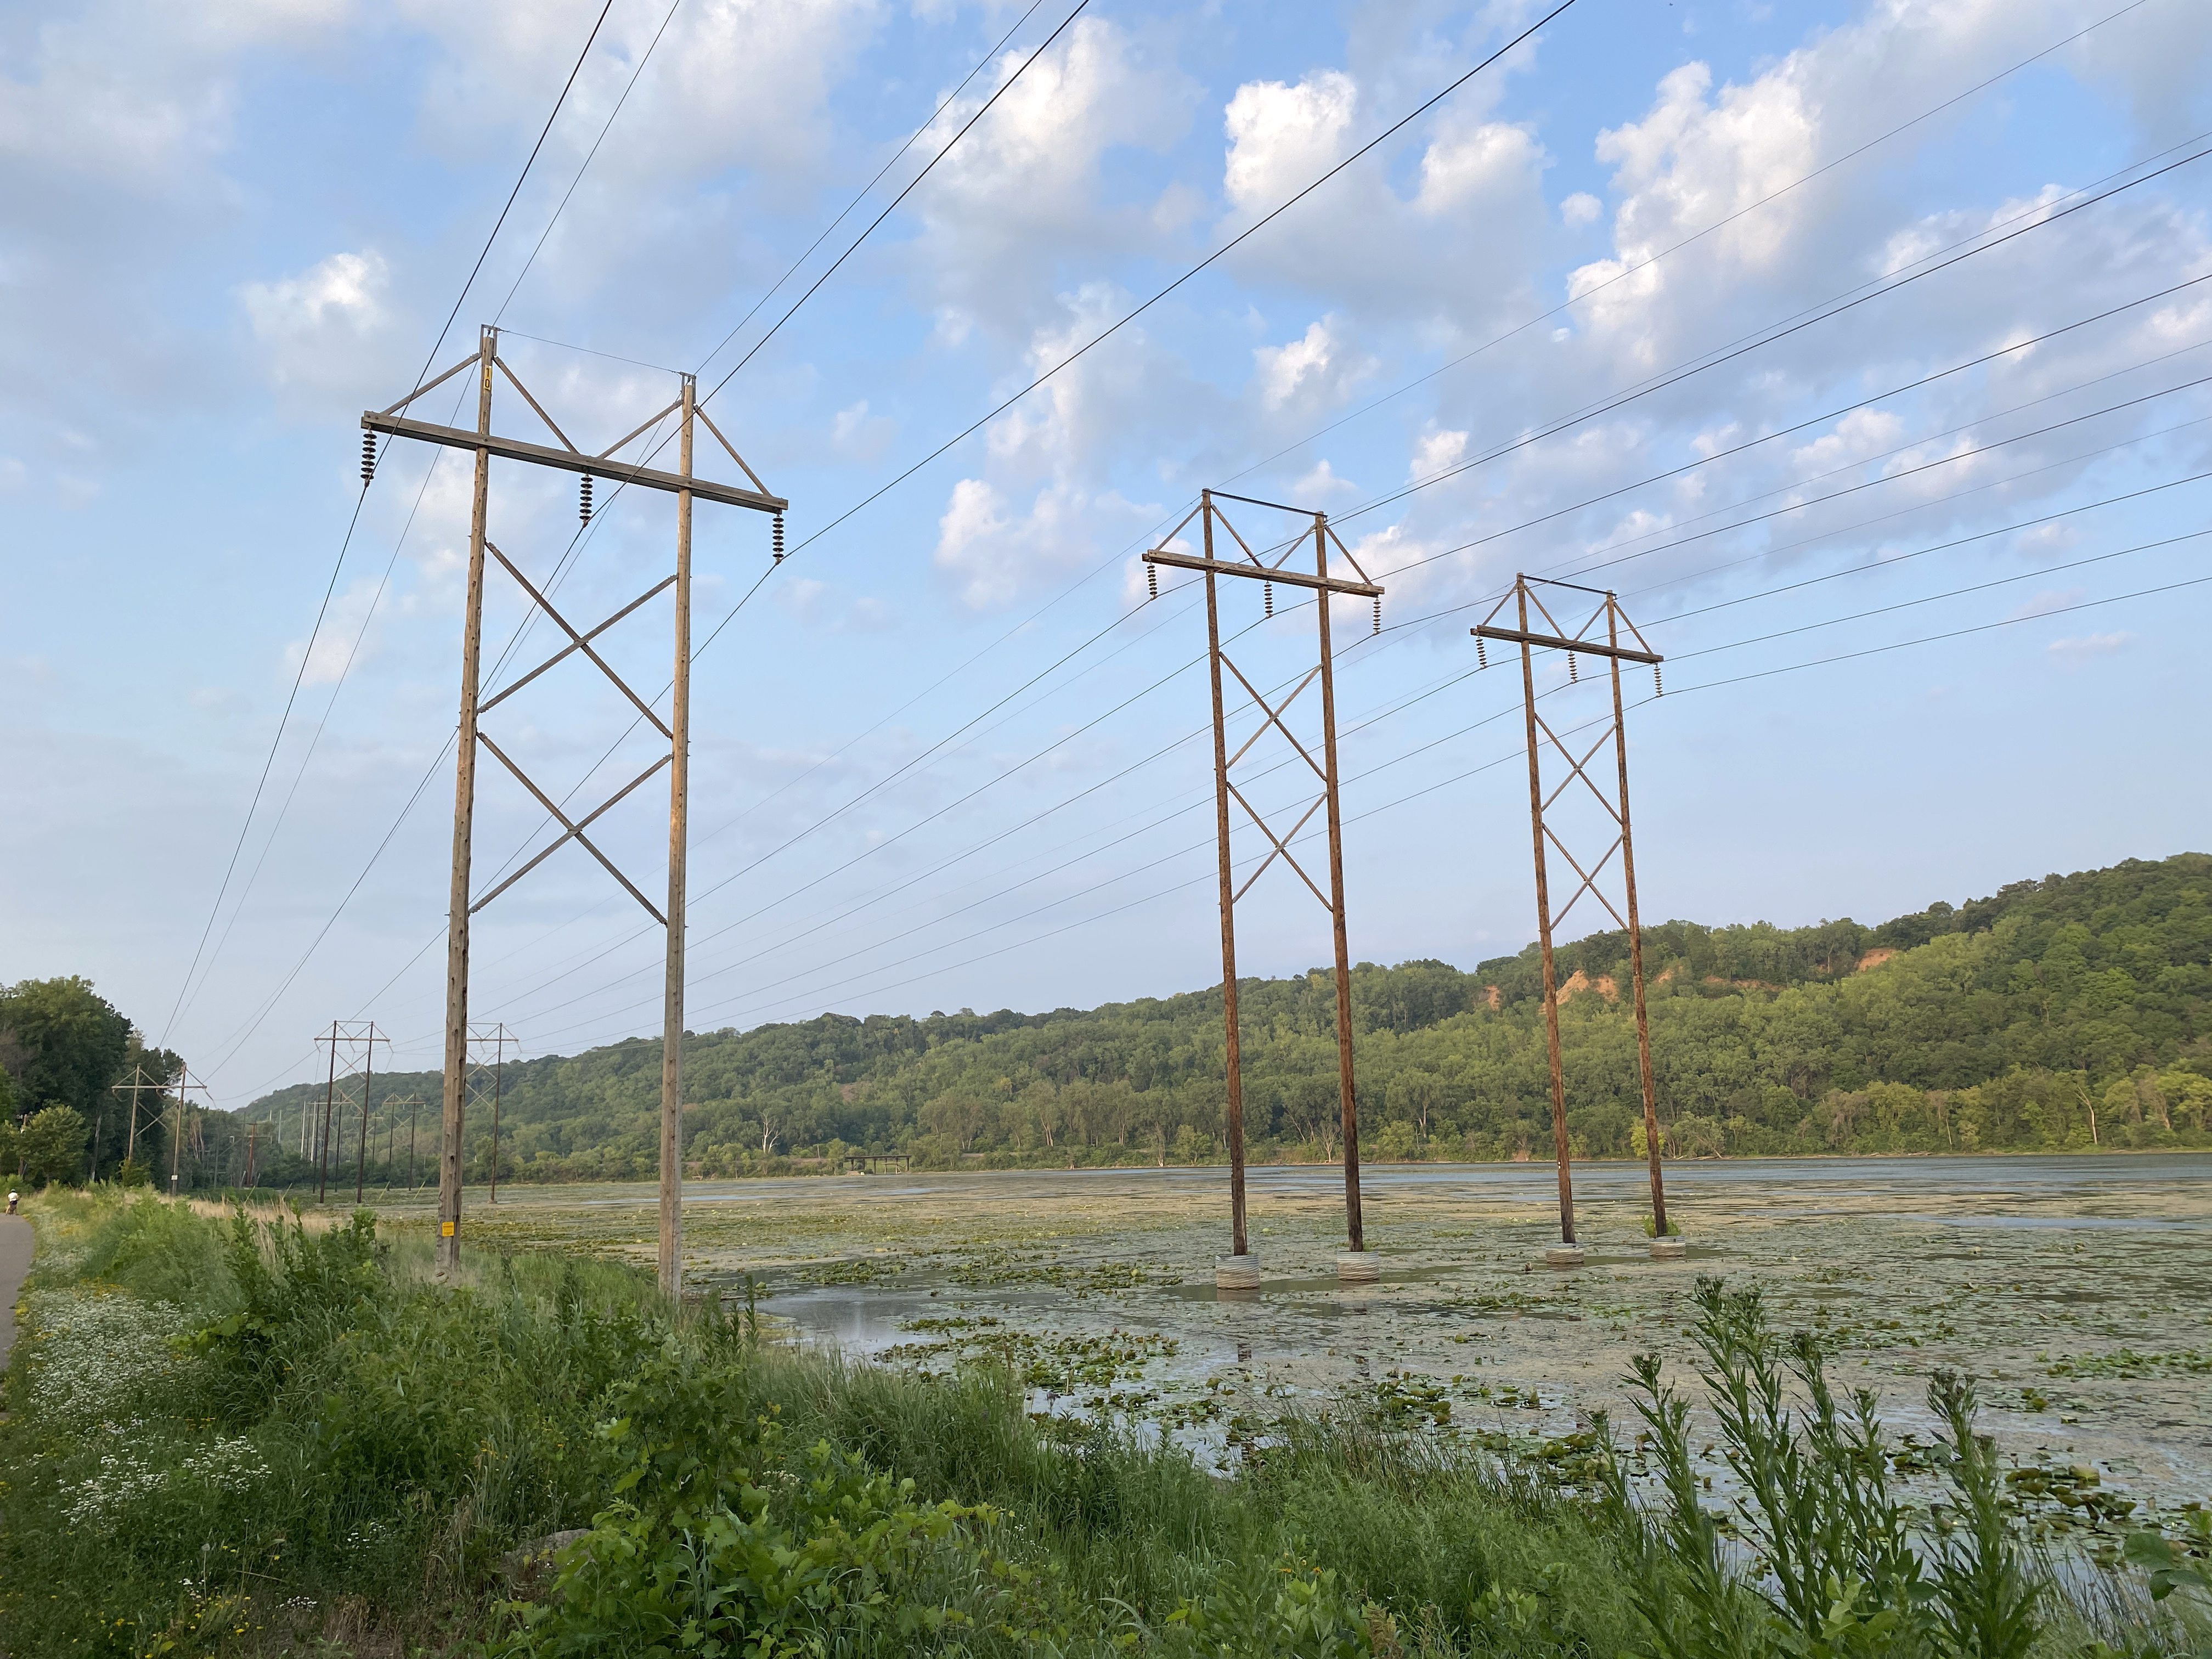 Electrical transmission lines in Lilydale Regional Park in St. Paul.